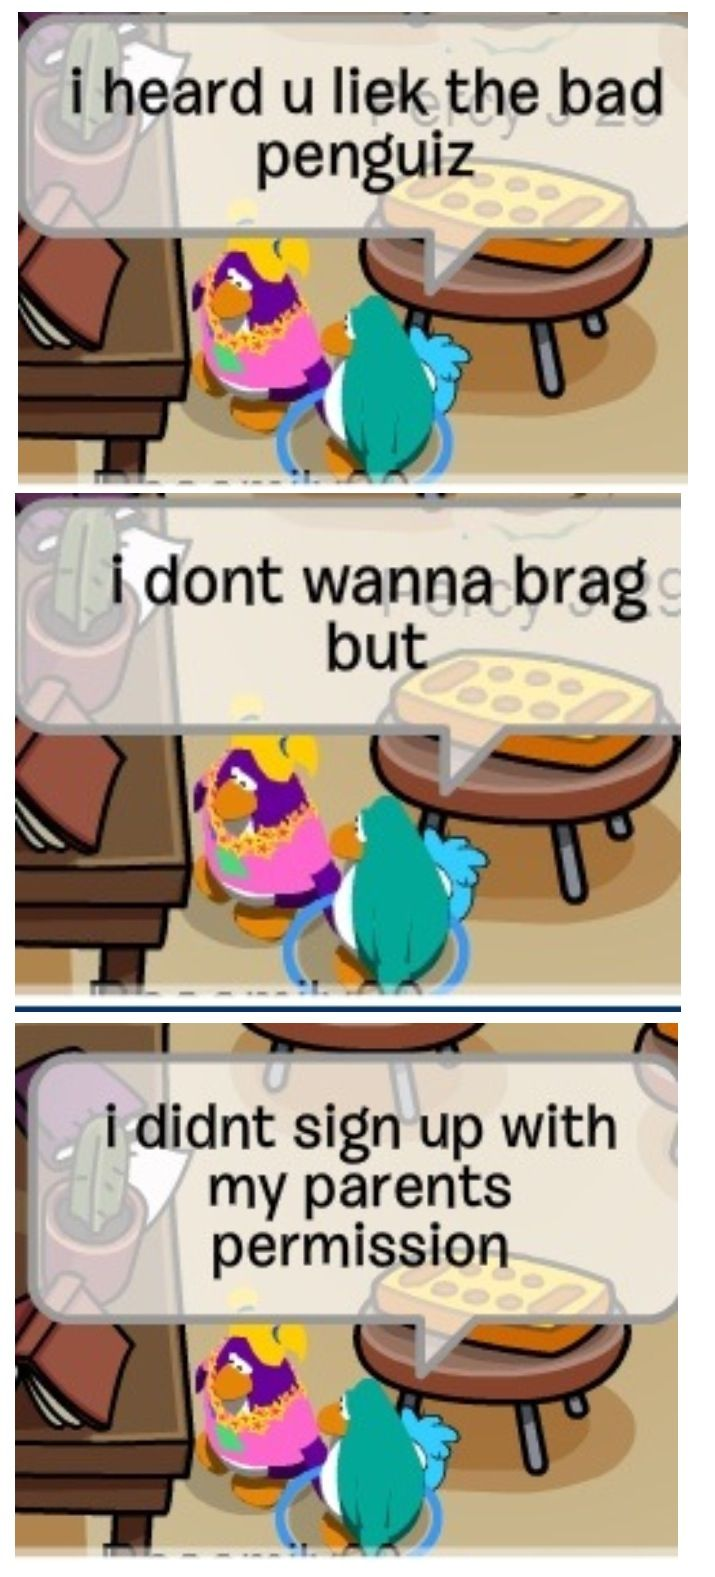 Club penguin, homie. Lol